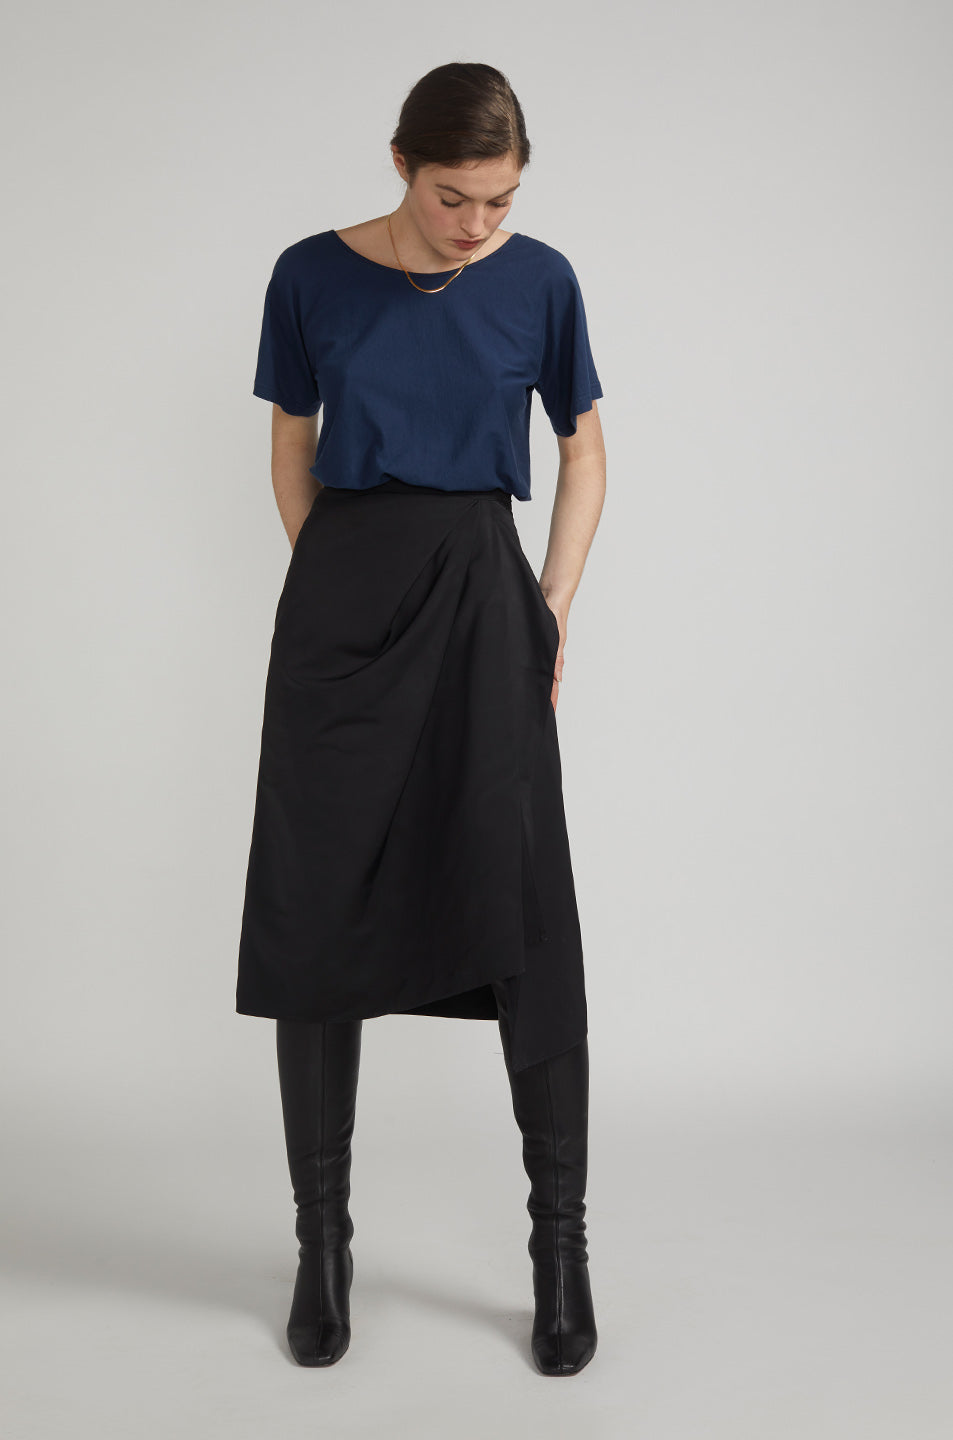 Welland Skirt